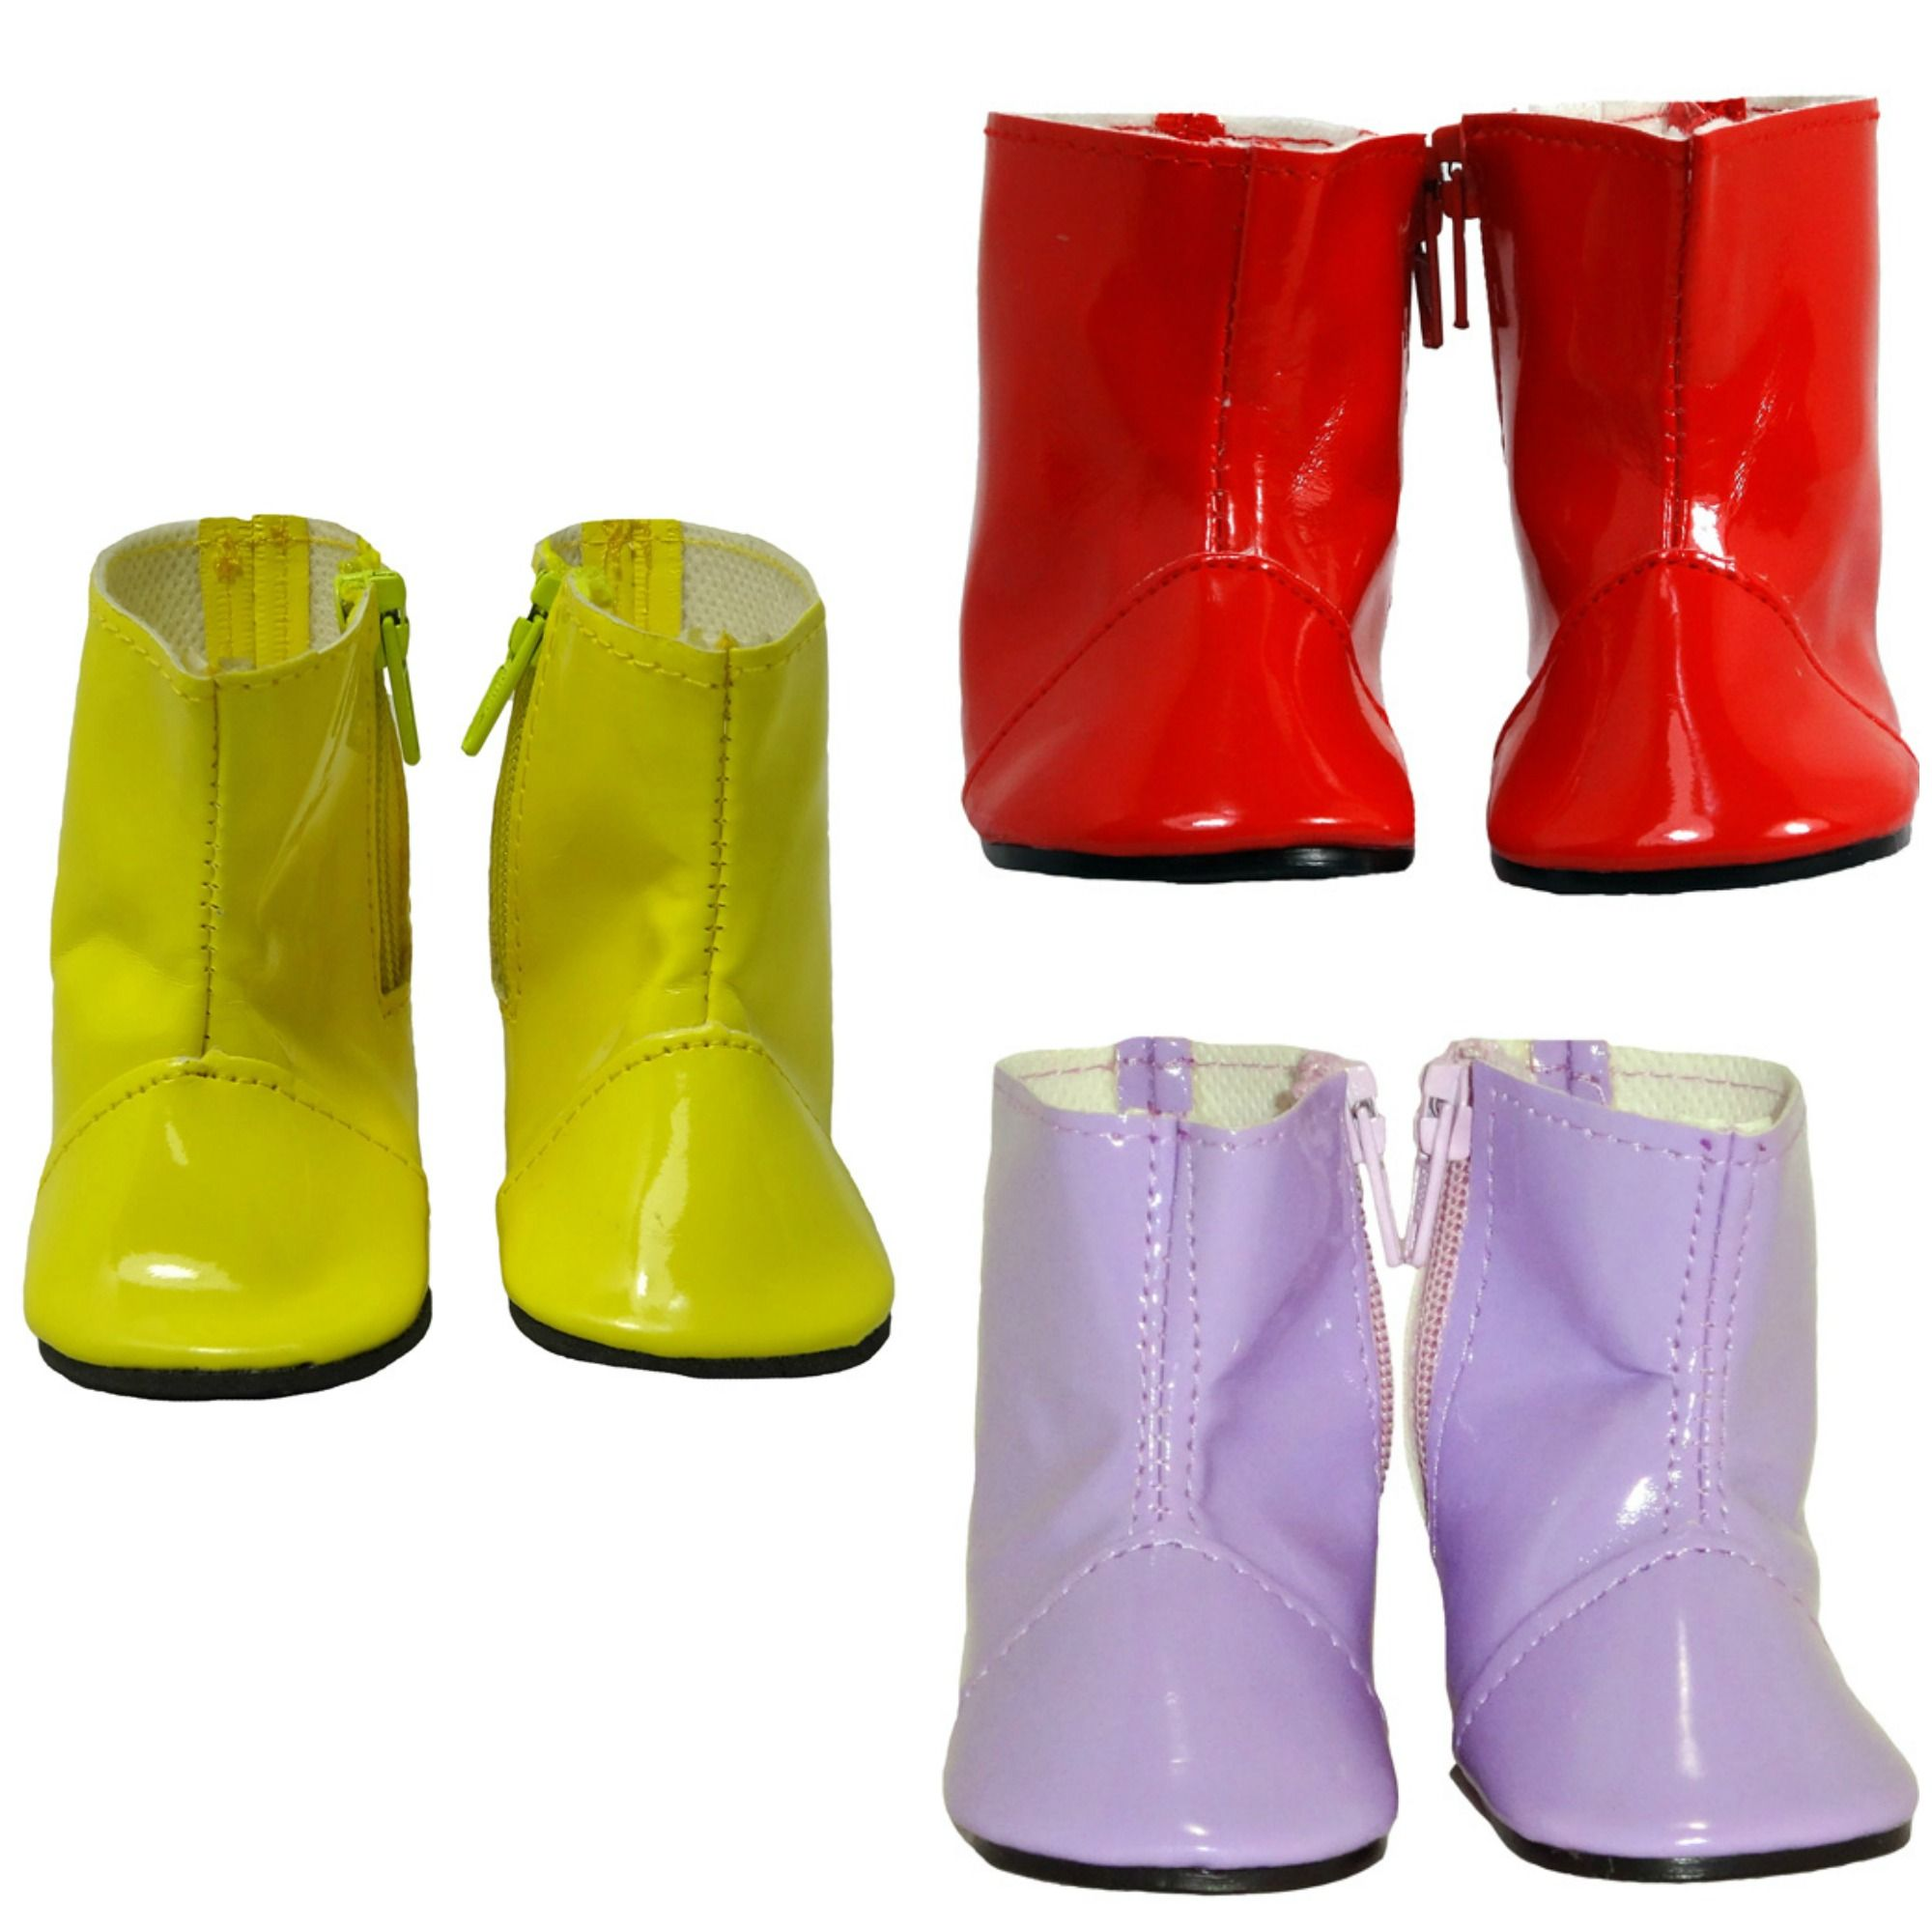 These rain boots have a side zip to make it easier to pull them on